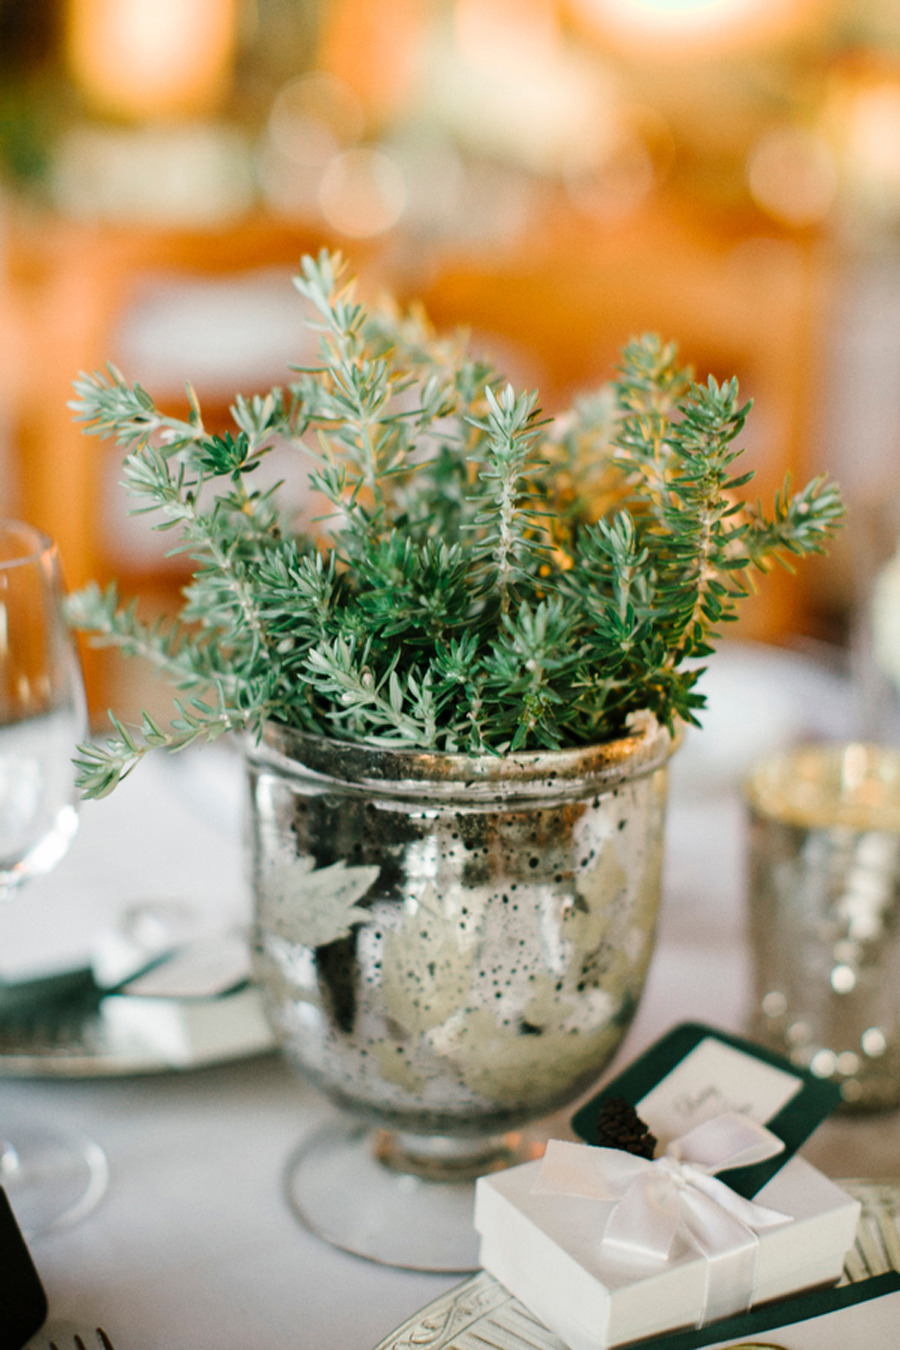 An intimate Christmas wedding : Photography : Josh Elliott | Floral Design: Jill Behrle, The Happy Vase